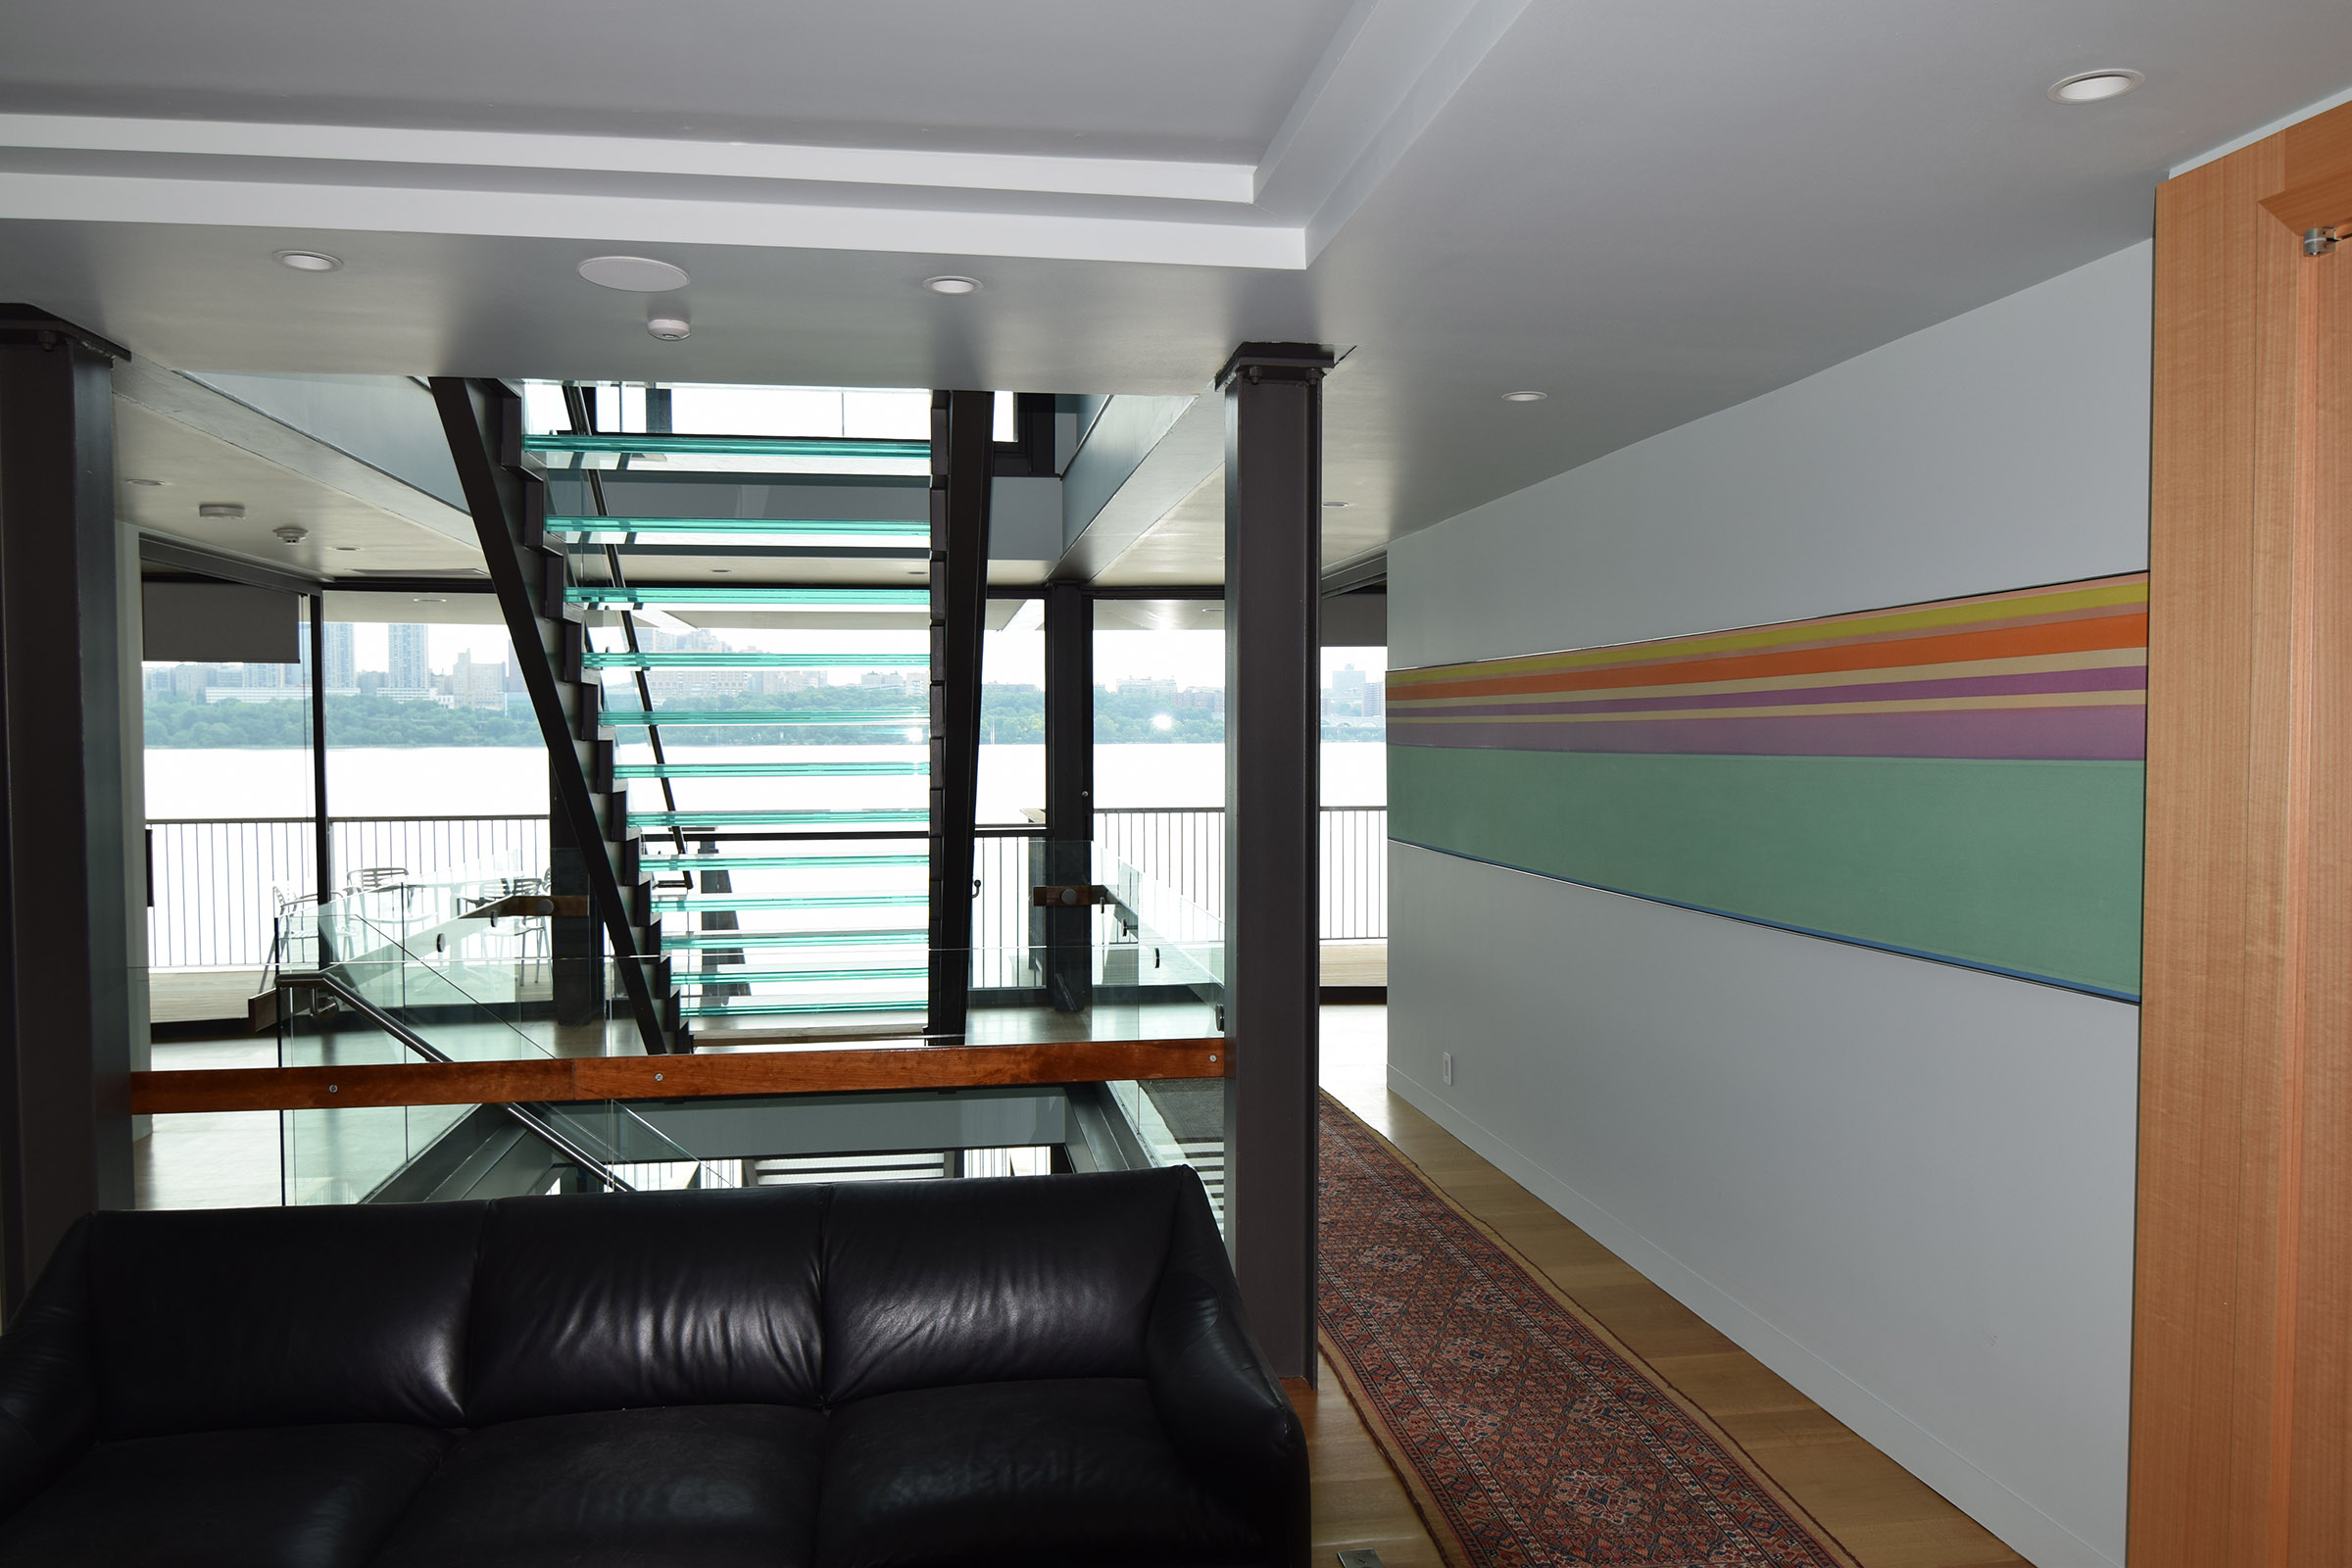 Staircase view including edge of Rift Anigre Wine Closet & open Pocket Door